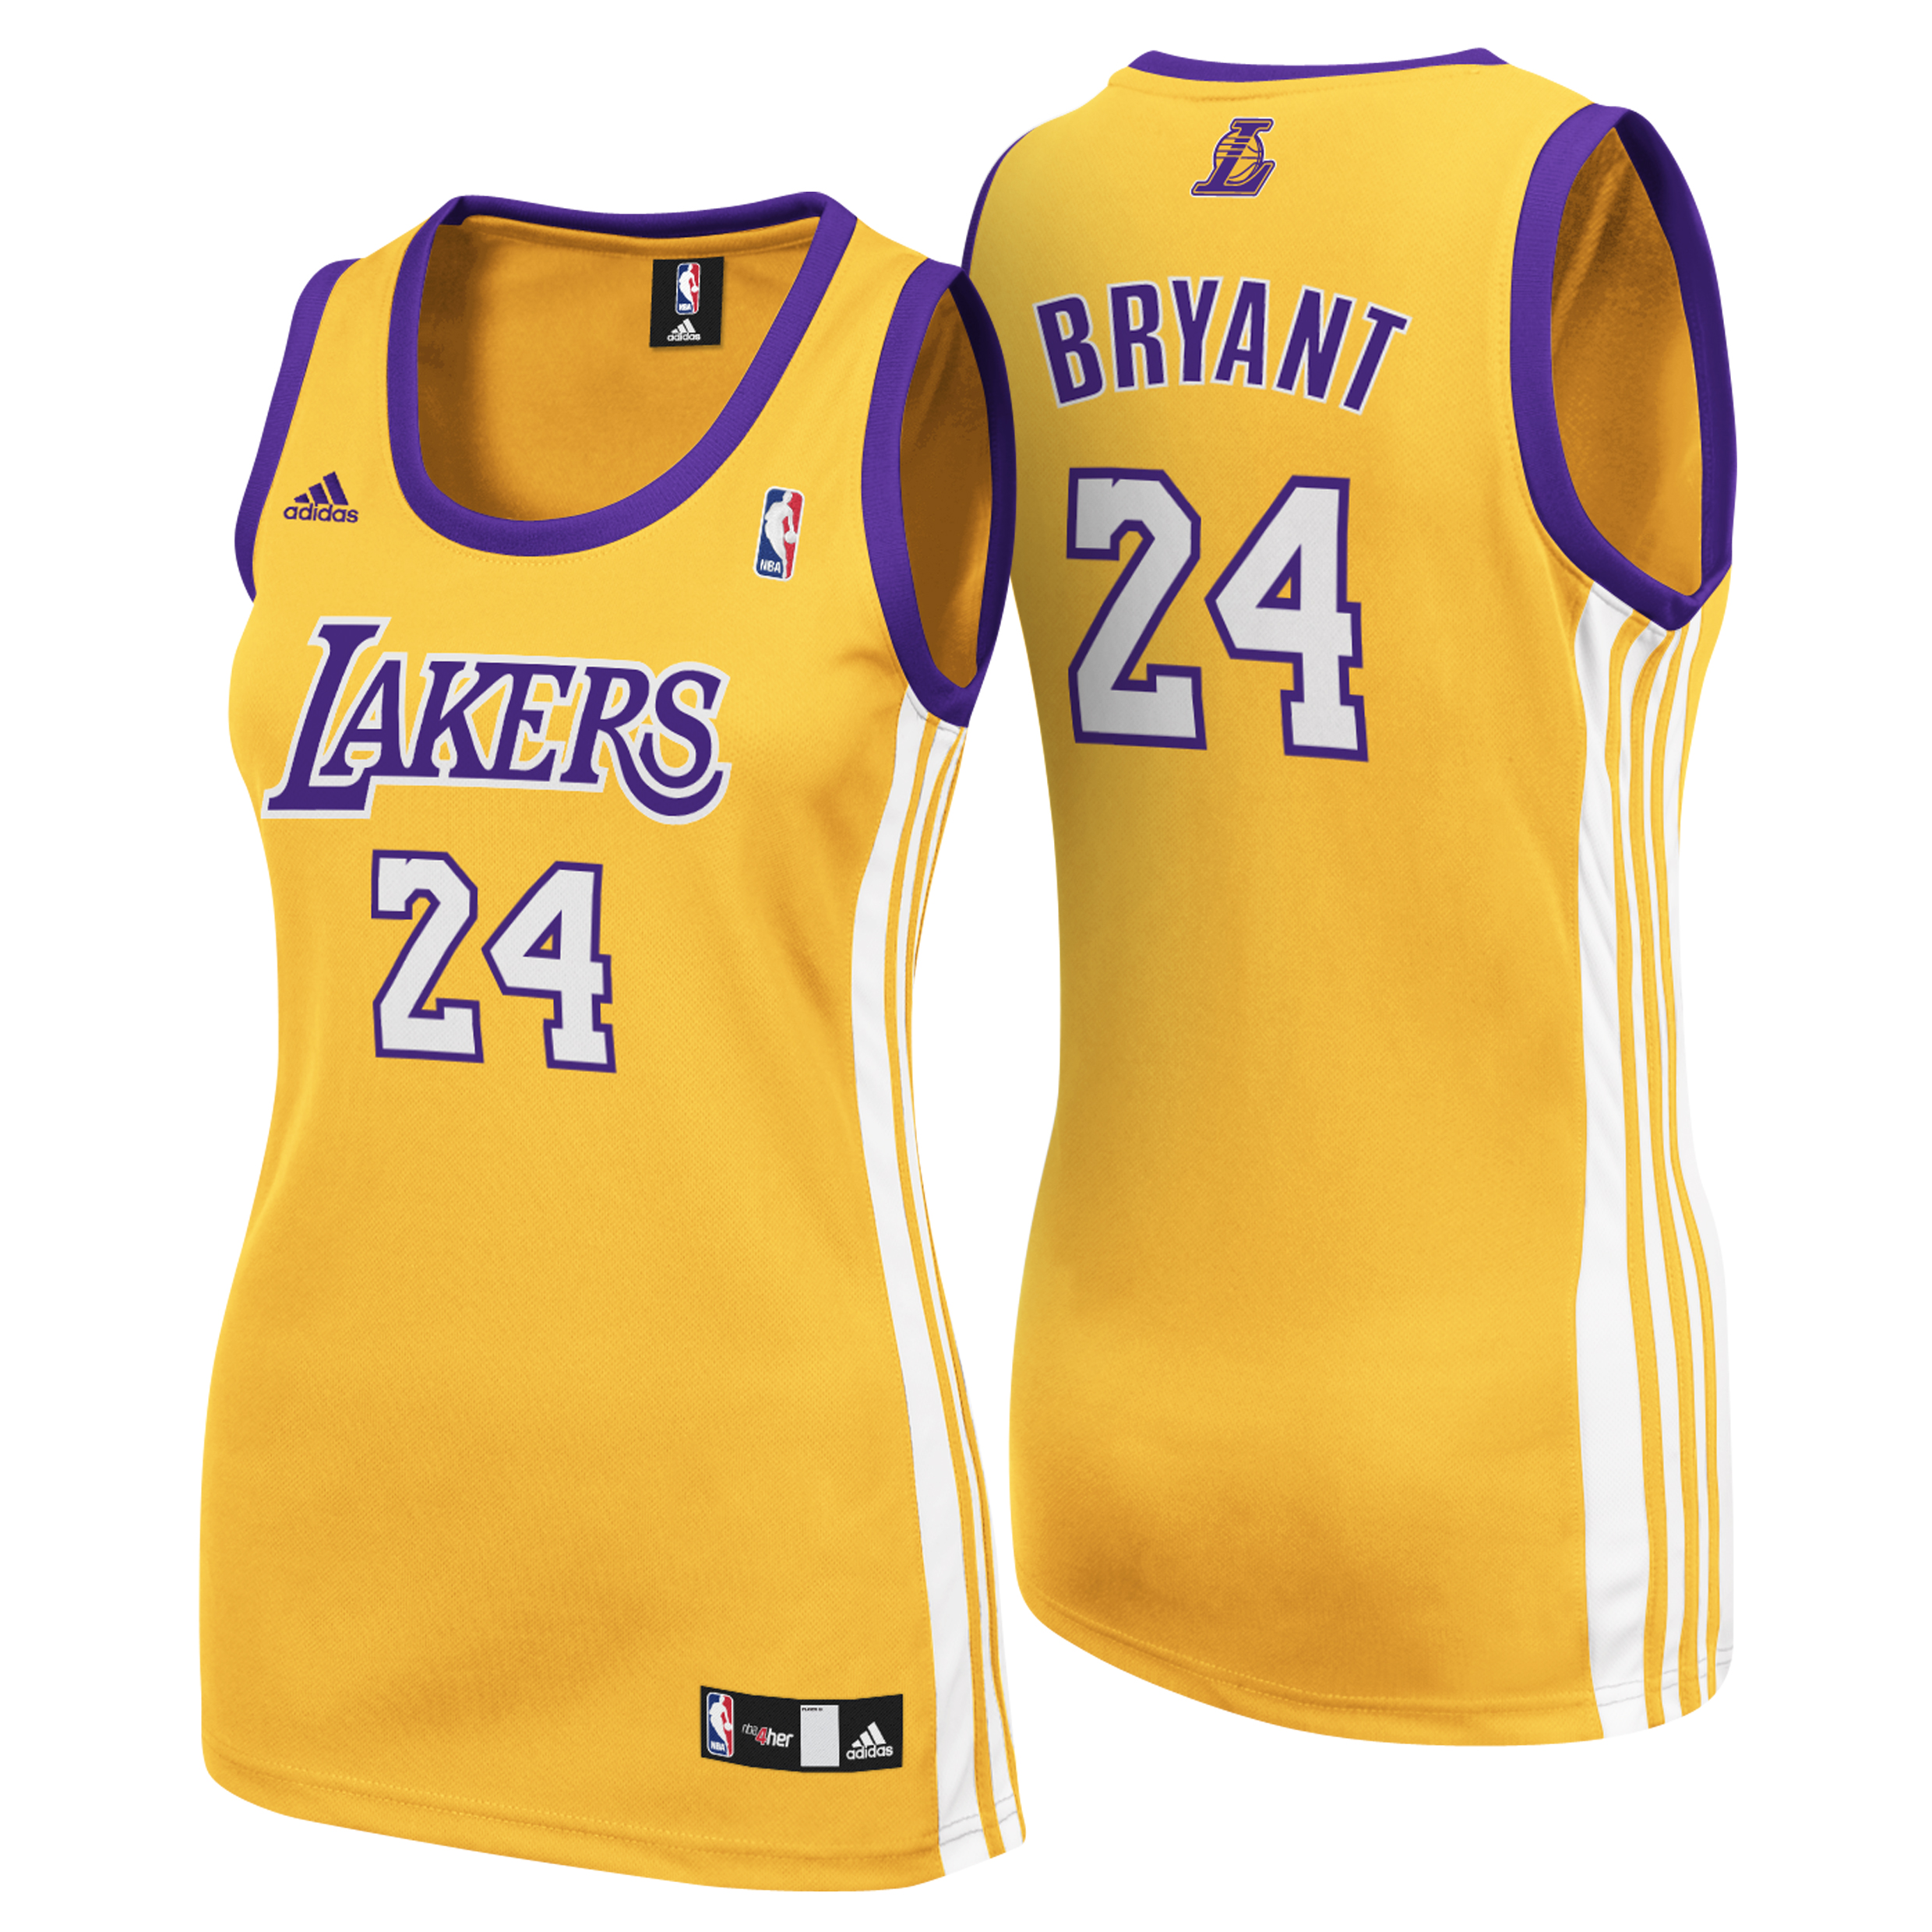 Los Angeles Lakers Home Replica Jersey - Kobe Bryant - Womens